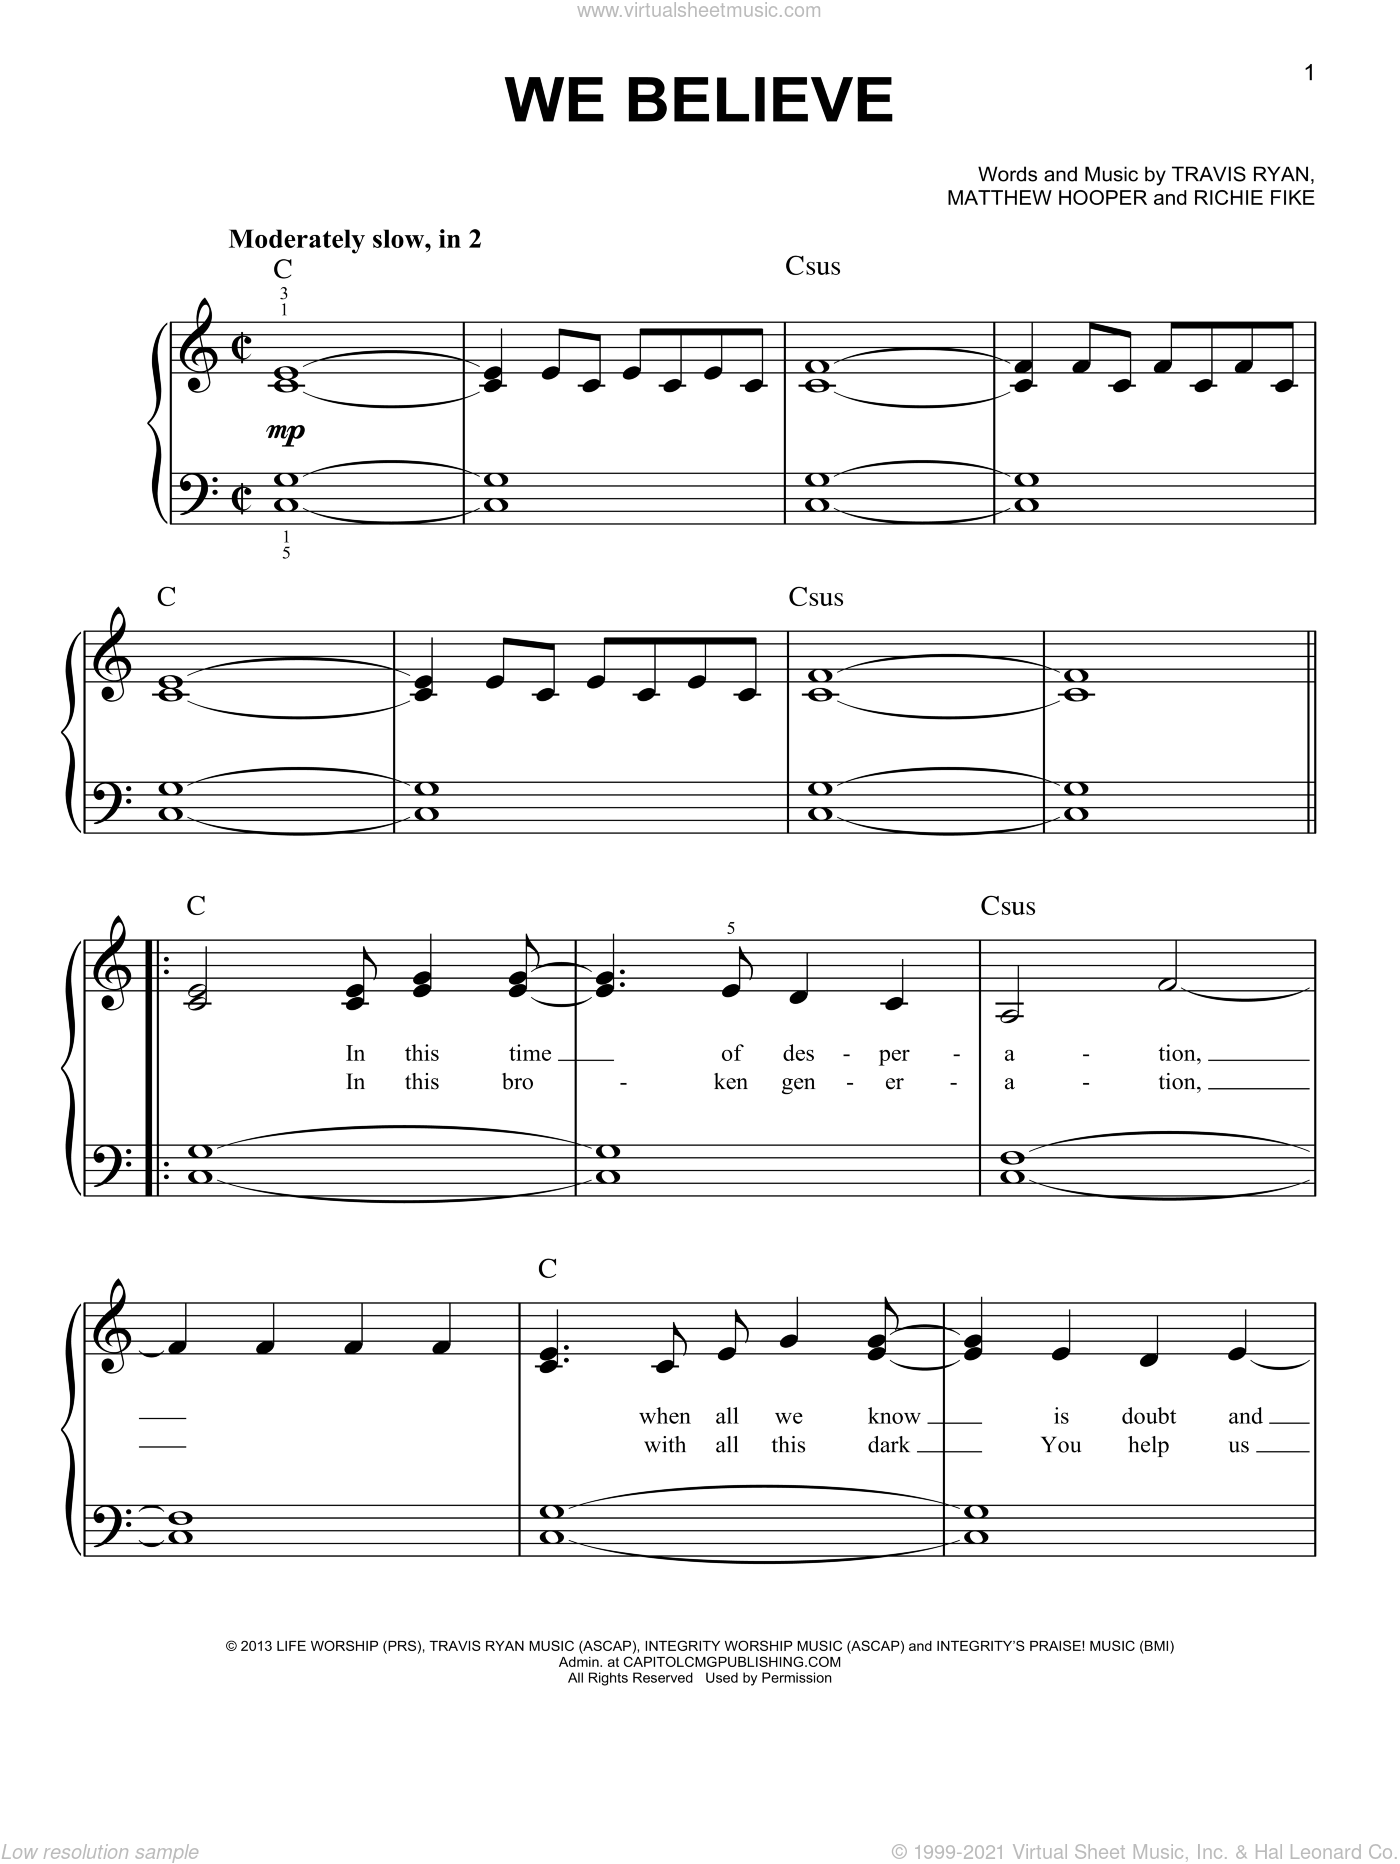 We Believe sheet music for piano solo by Newsboys, Matthew Hooper, Richie Fike and Travis Ryan, easy skill level